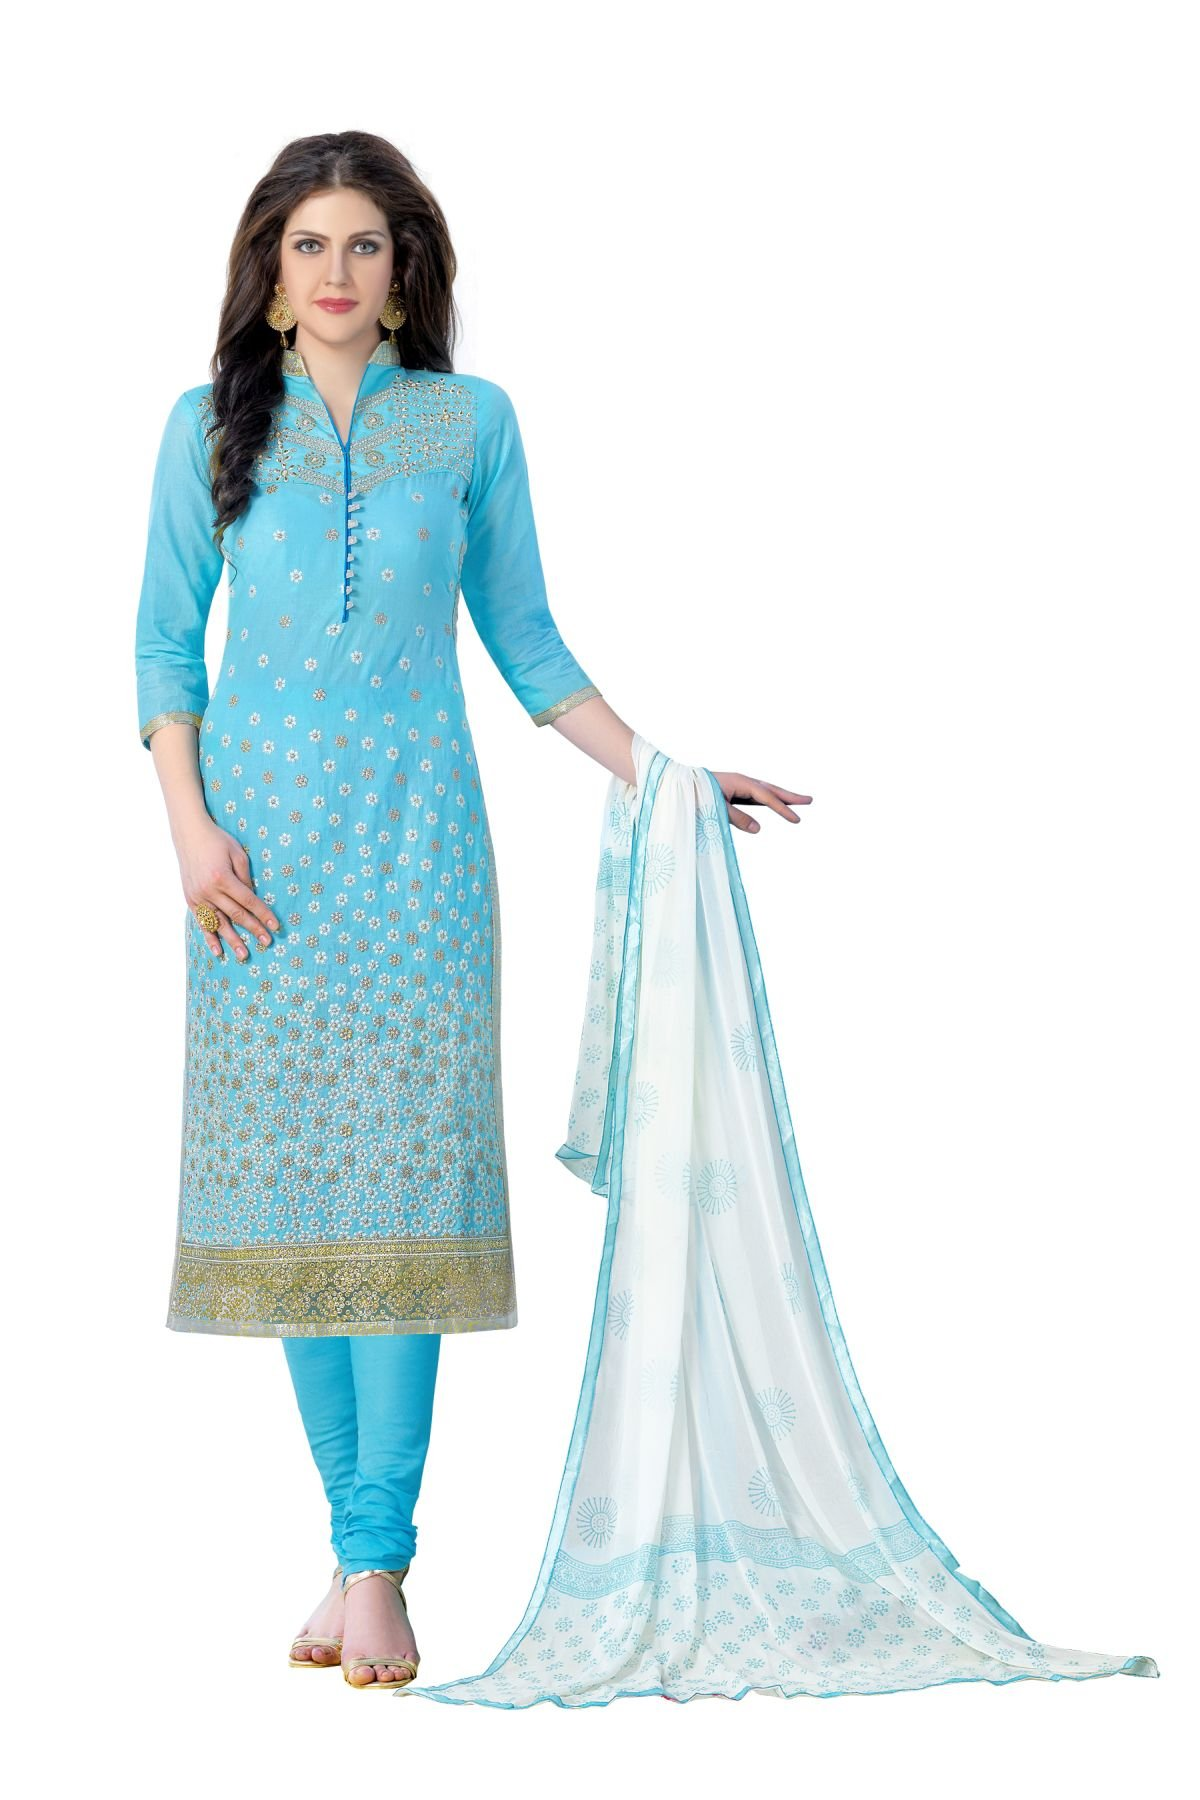 Areum Sky Blue Colored Pure Heavy Glass Cotton Embroidered Un-Stitched Dress Material For Women